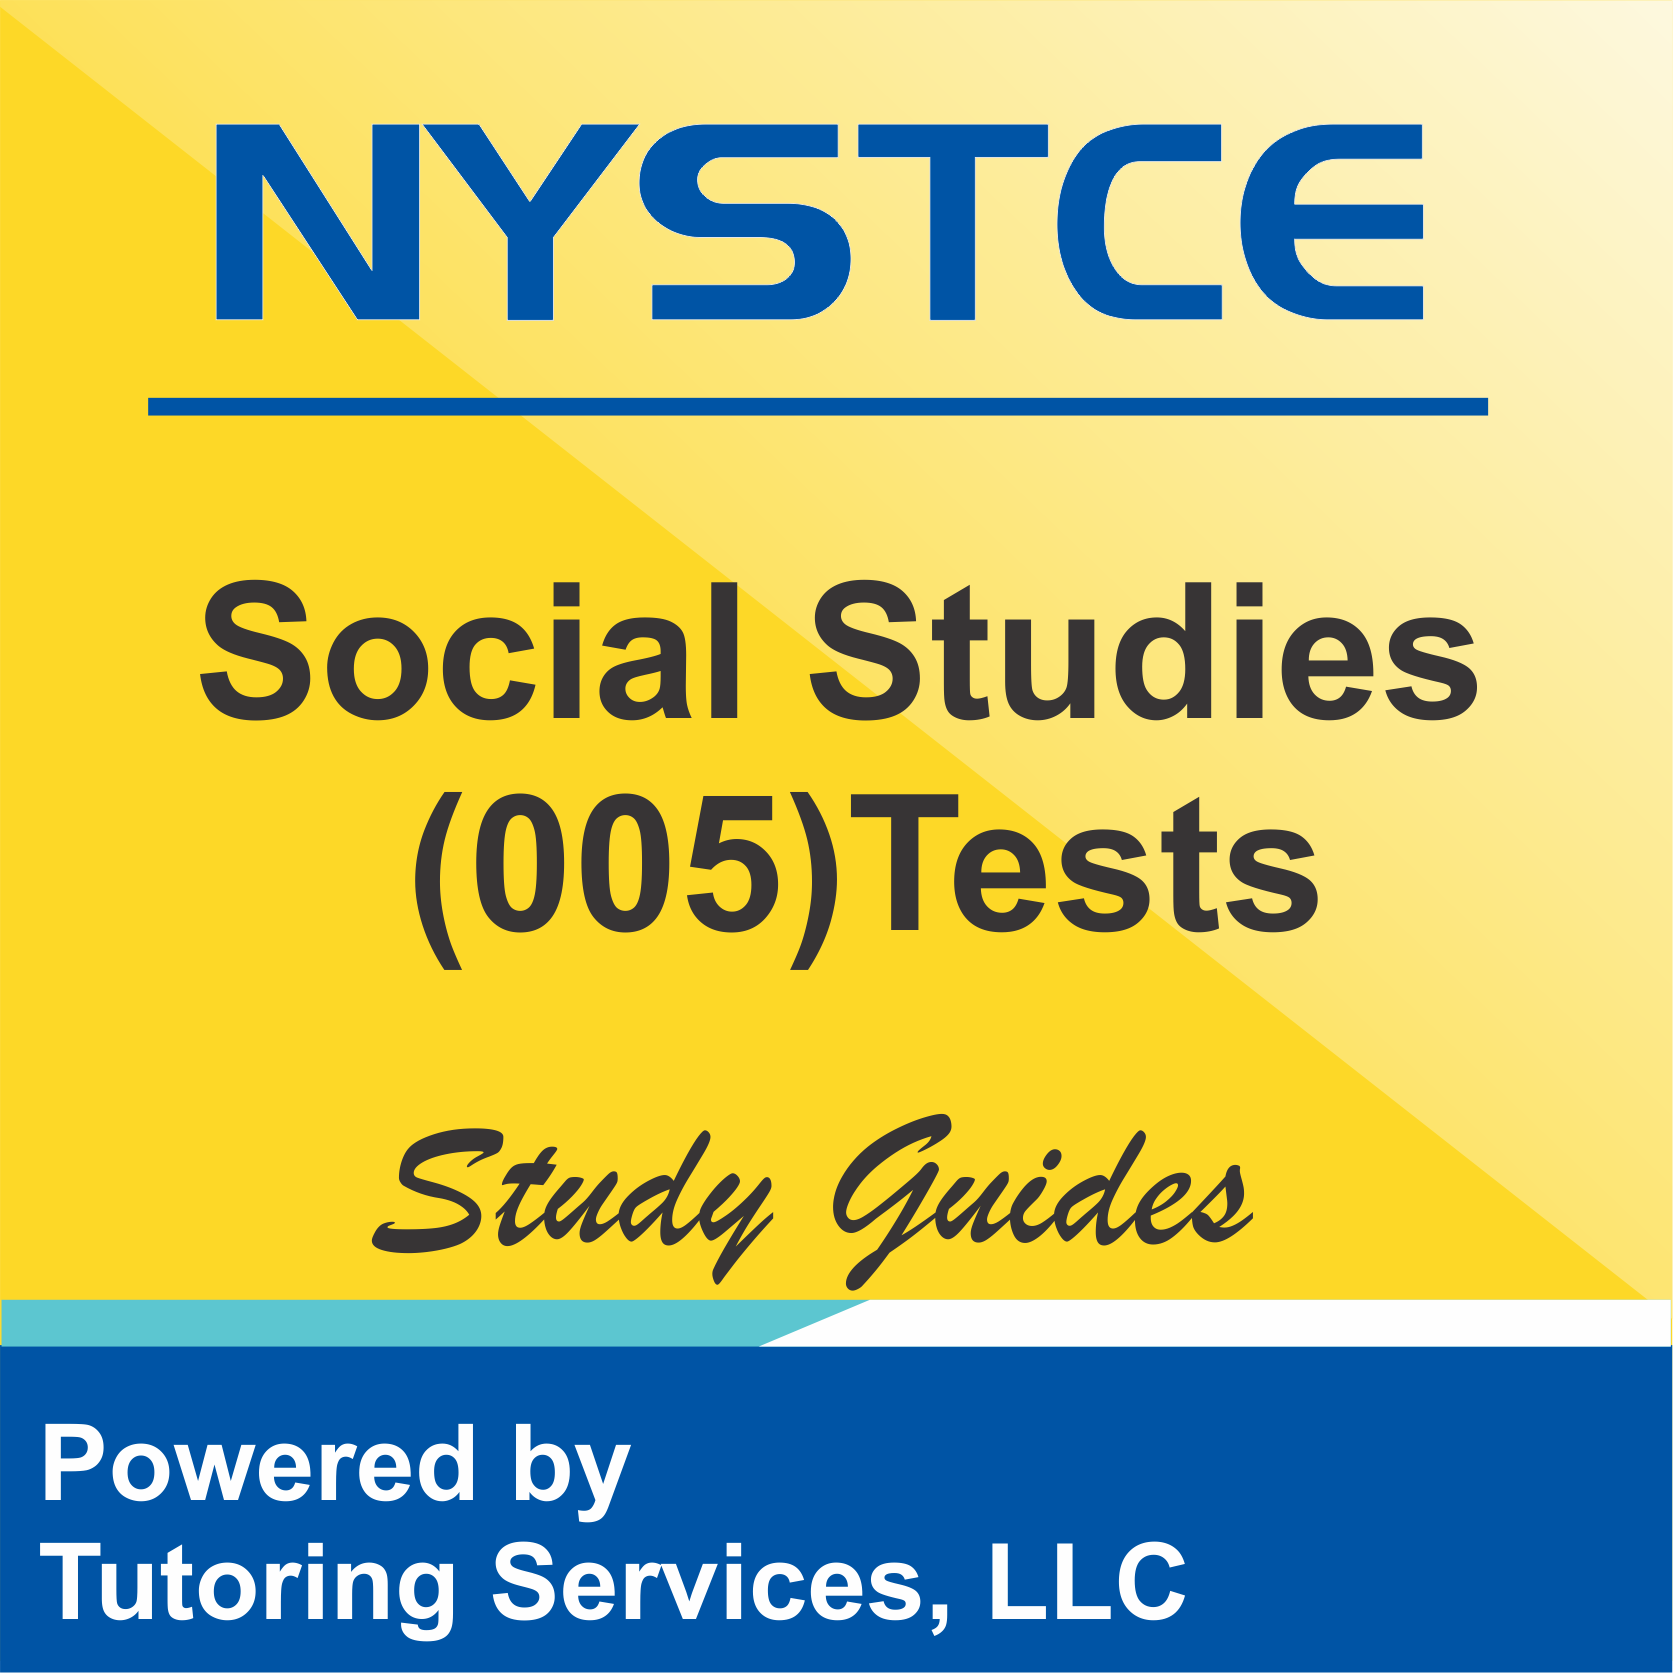 NYSTCE New York State Test and Exam Details for Social Studies 005